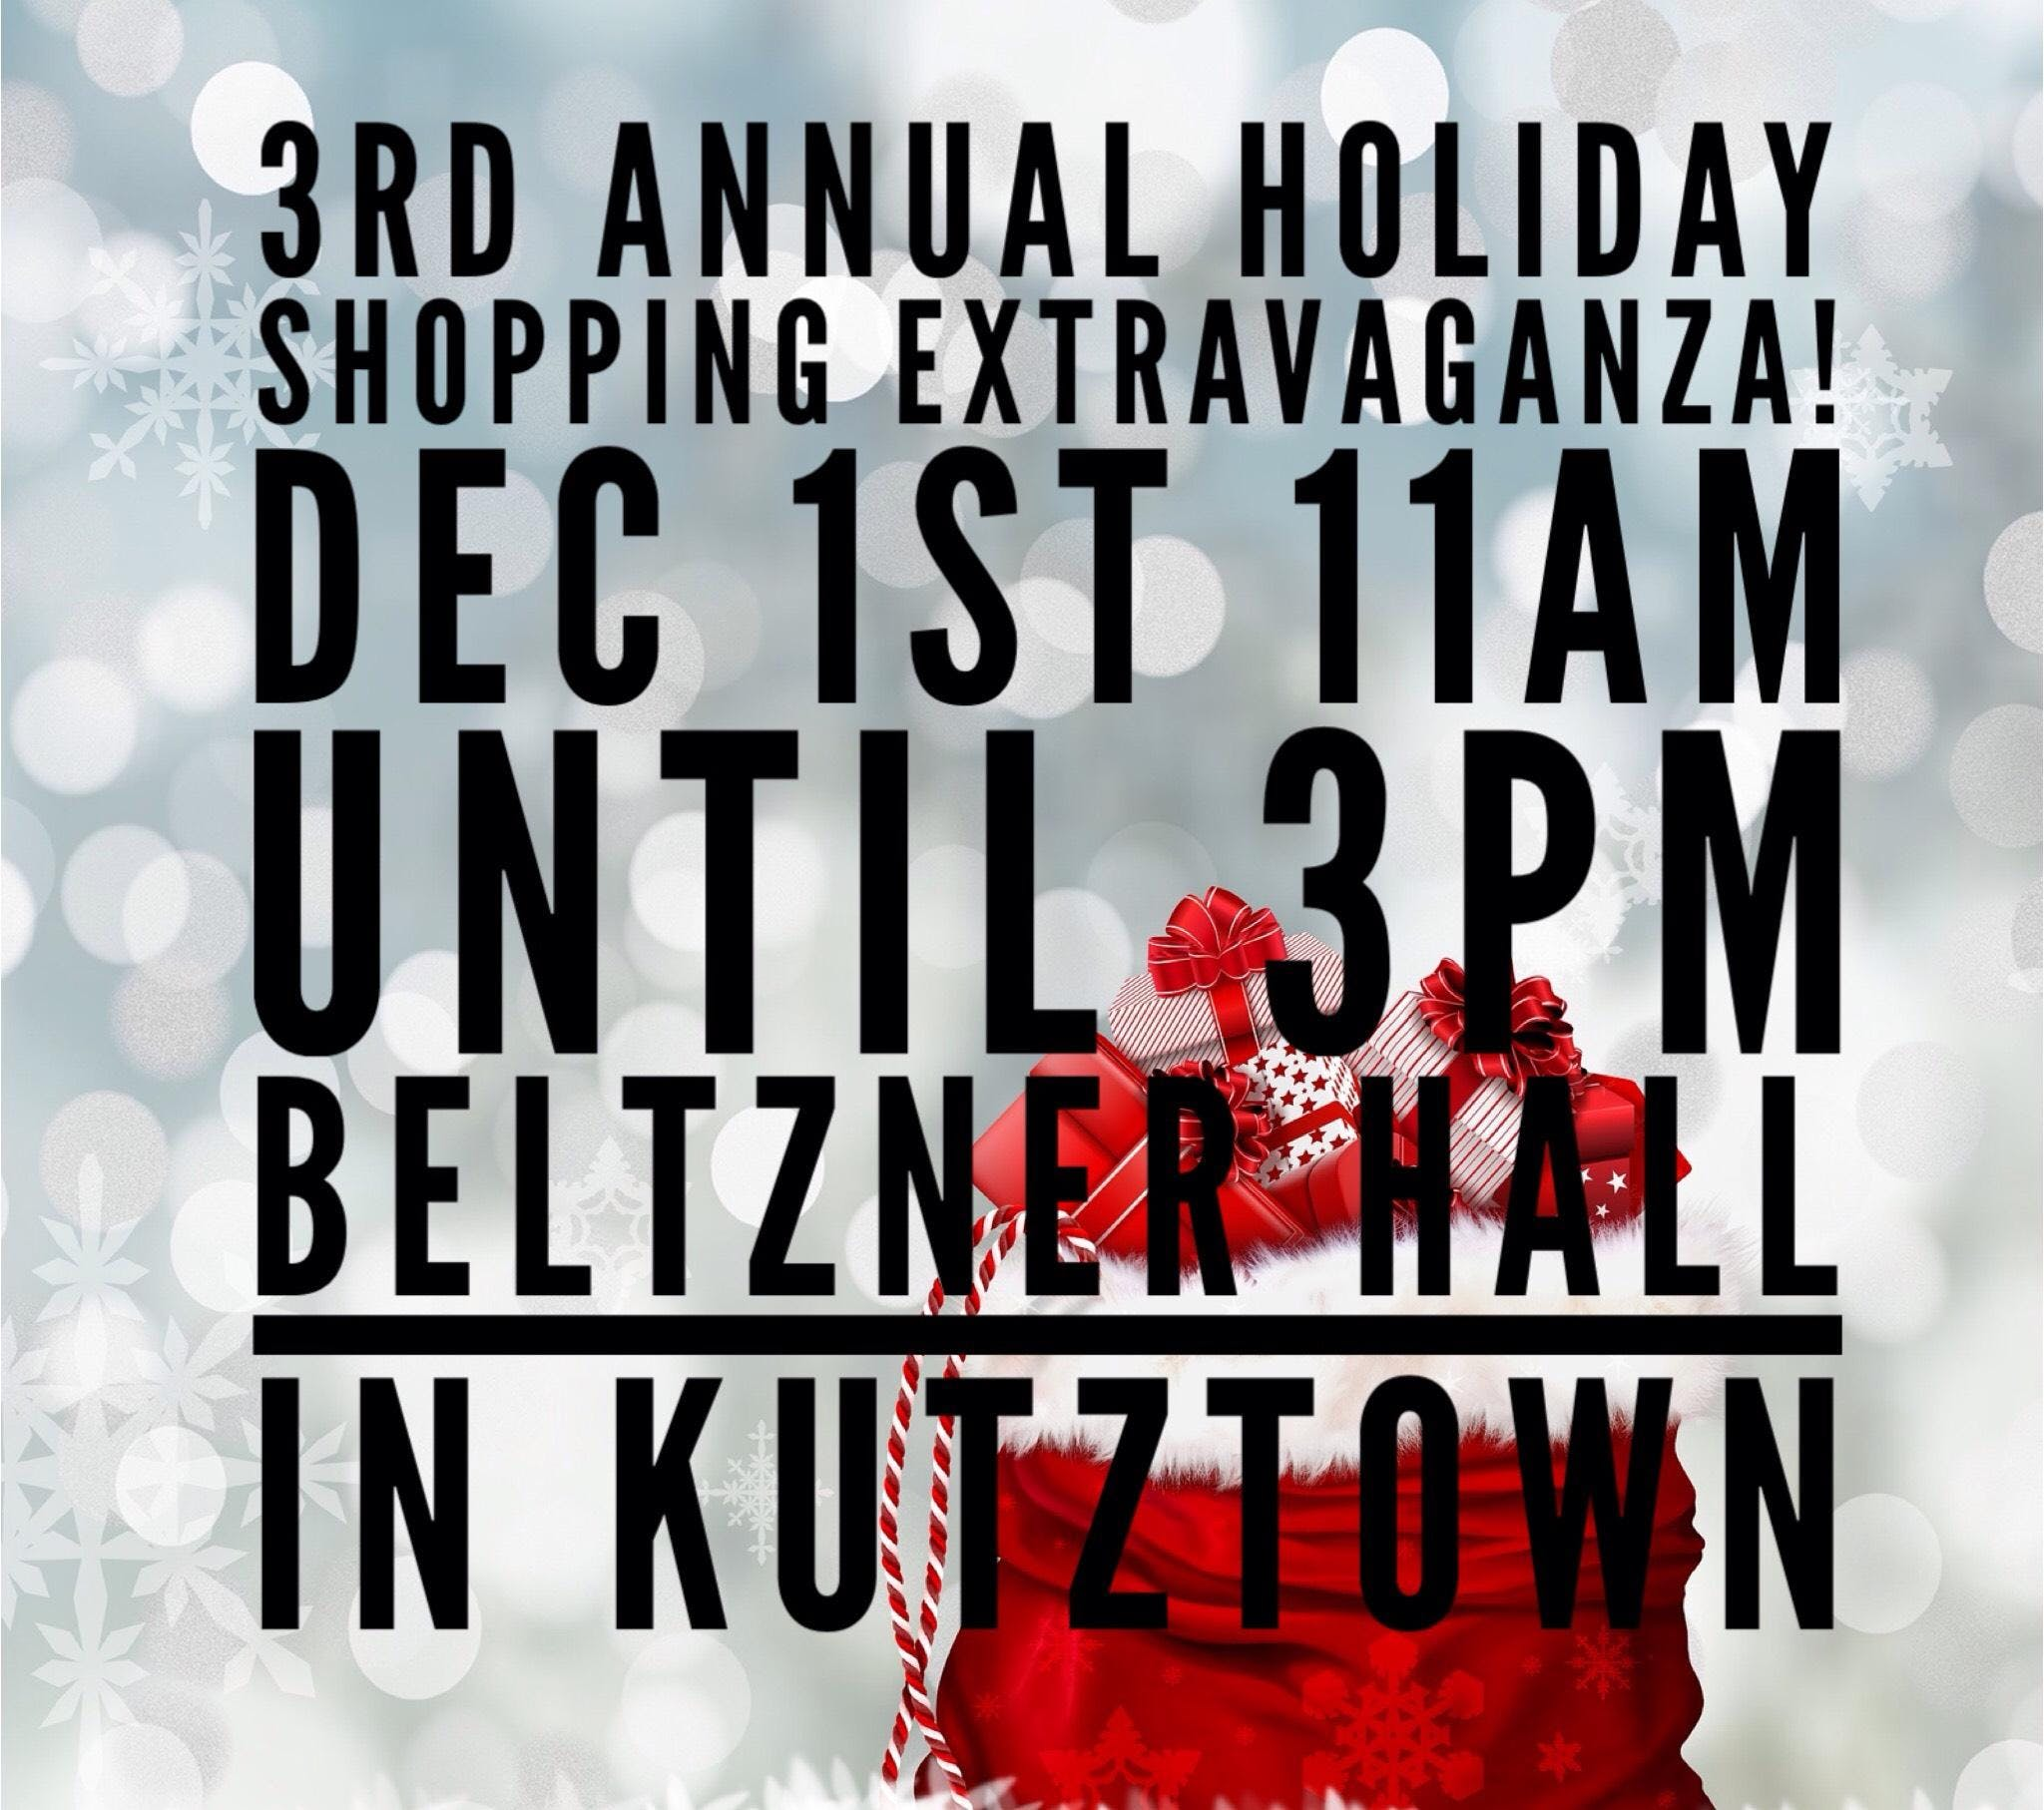 Holiday Shopping Extravaganza! At Kutztown Fairgrounds